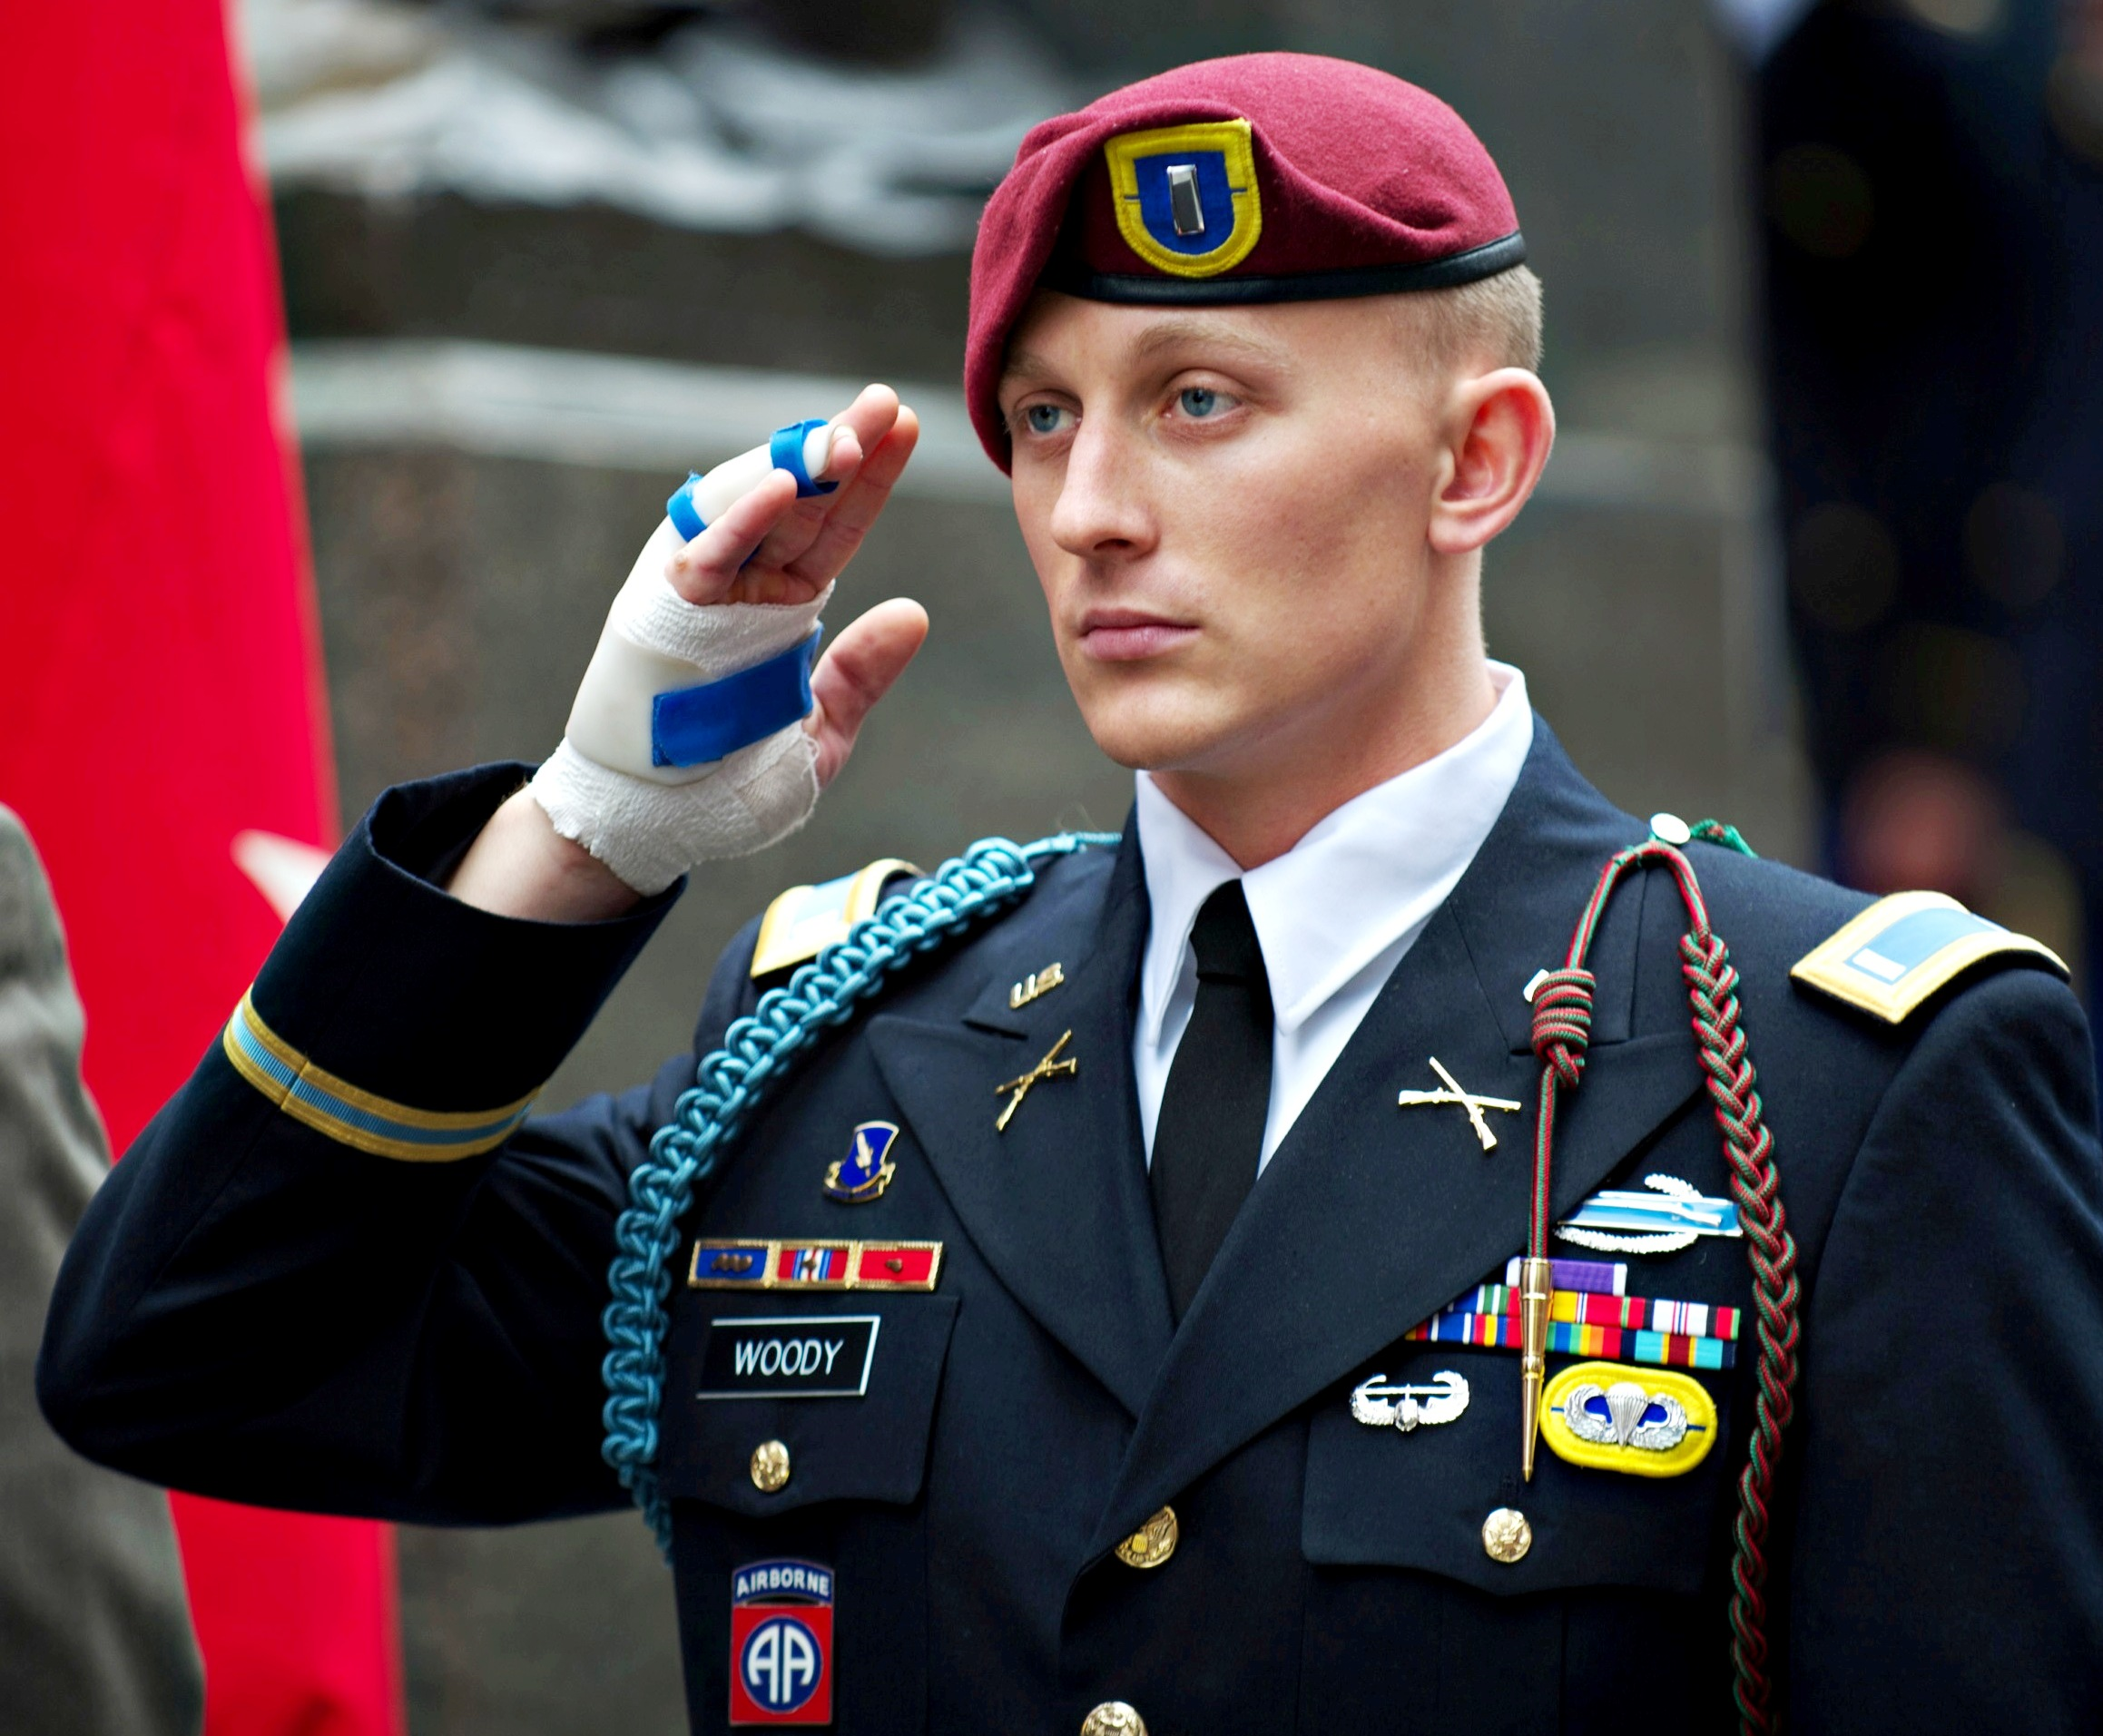 File:U.S. Army 1st Lt. Alexander Woody, With The 82nd